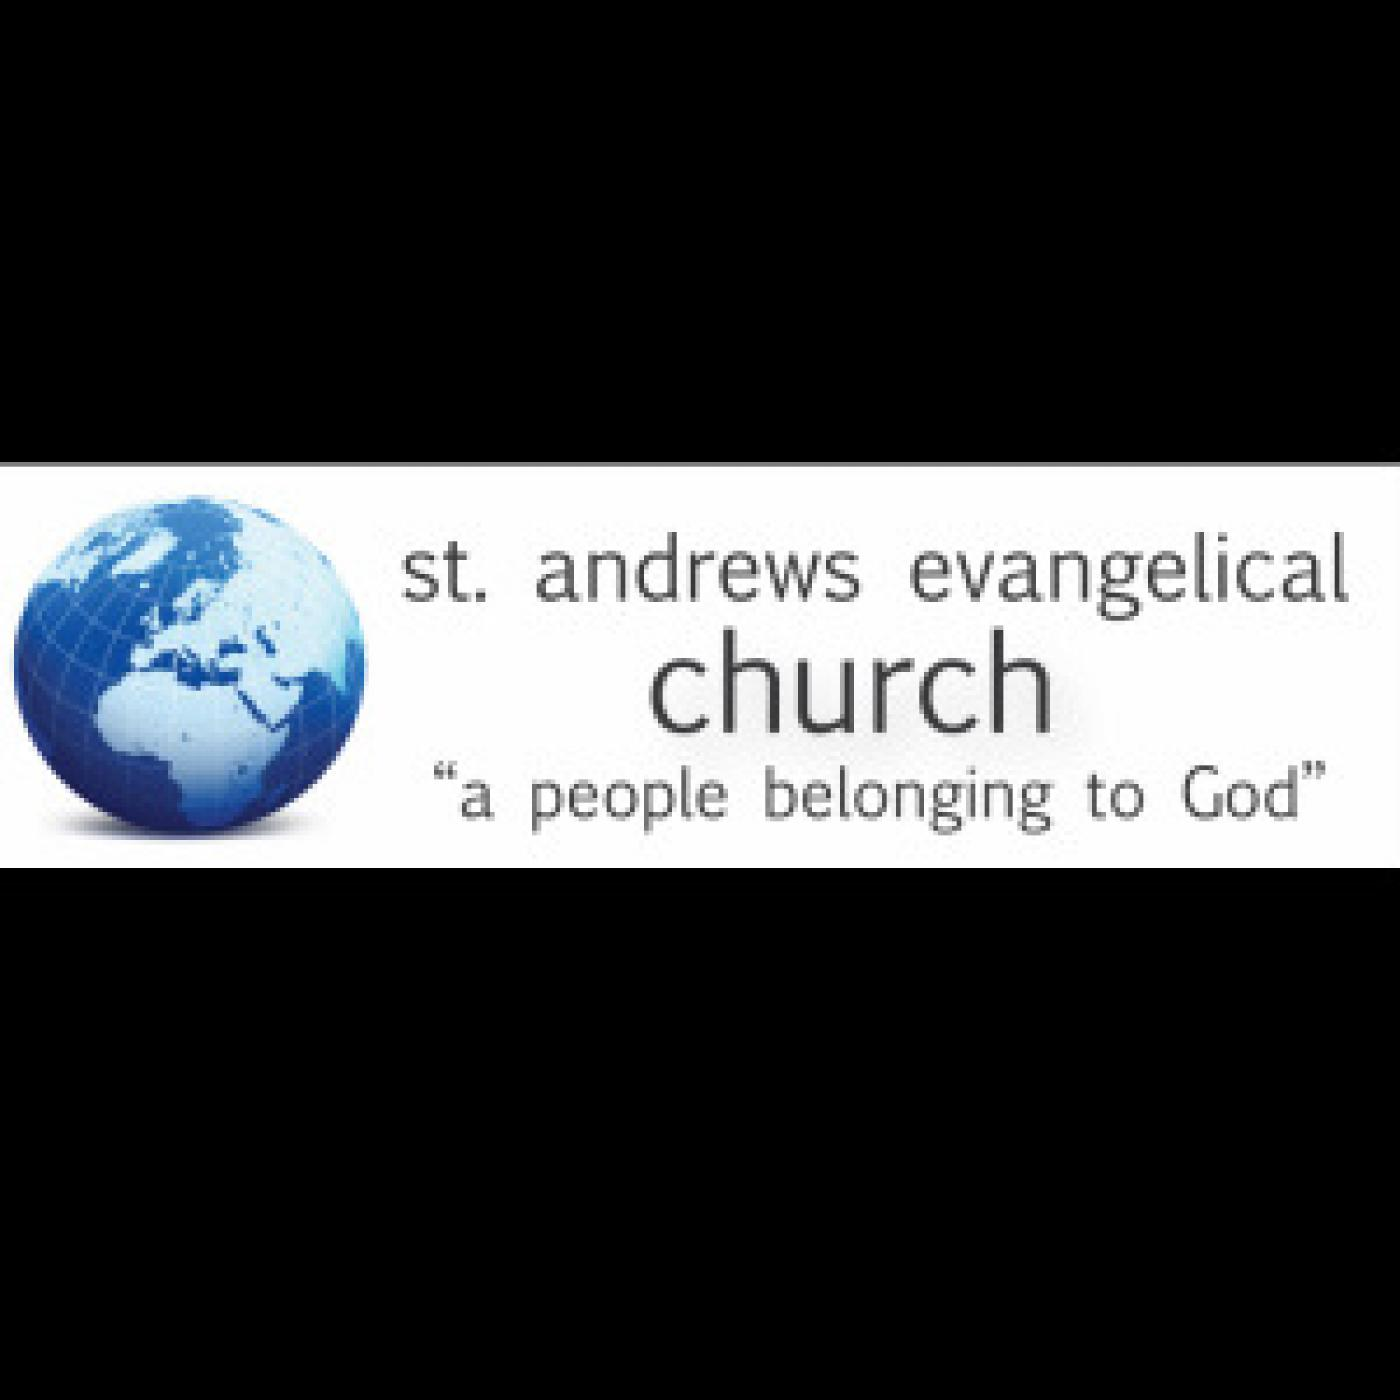 St. Andrews Evangelical Church Sermons